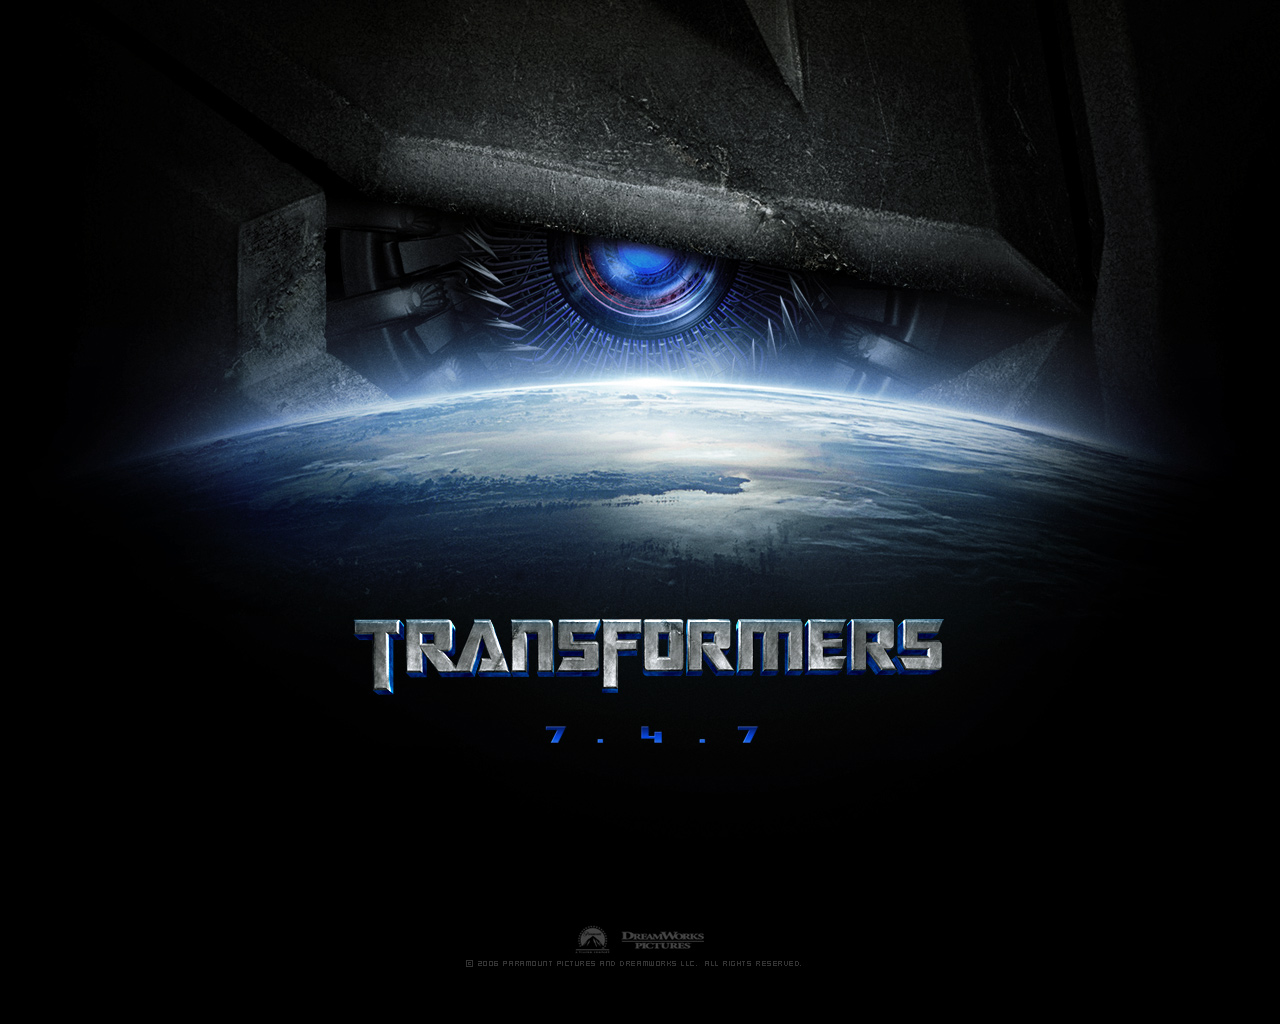 Transformers (2007) | Download Free MOVIES from MEDIAFIRE Link Transformers 2007